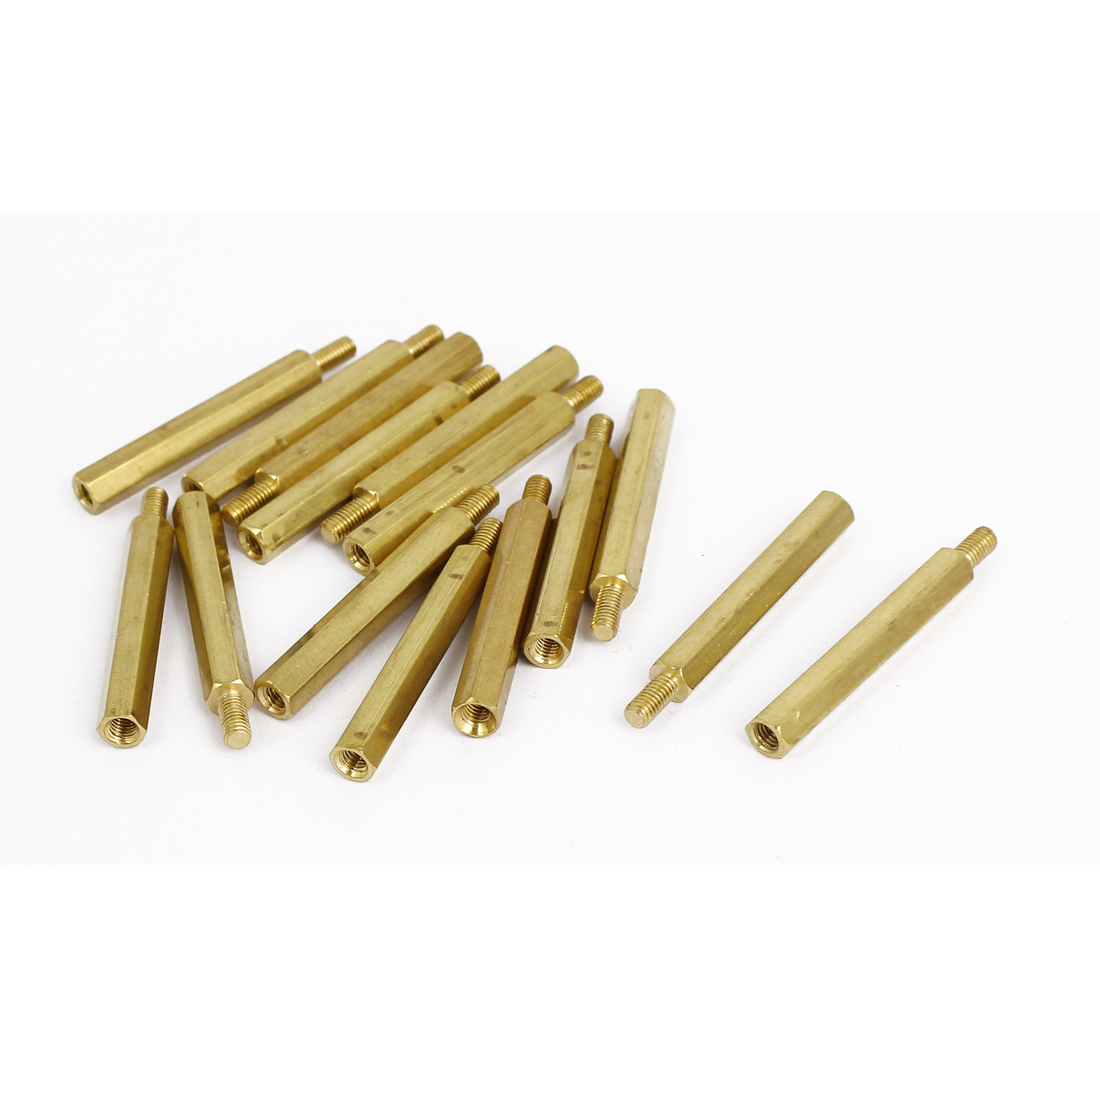 M3 Female x Male Brass Hexagonal Pillar Standoff Spacer Screws Bolt 32+6mm 15pcs